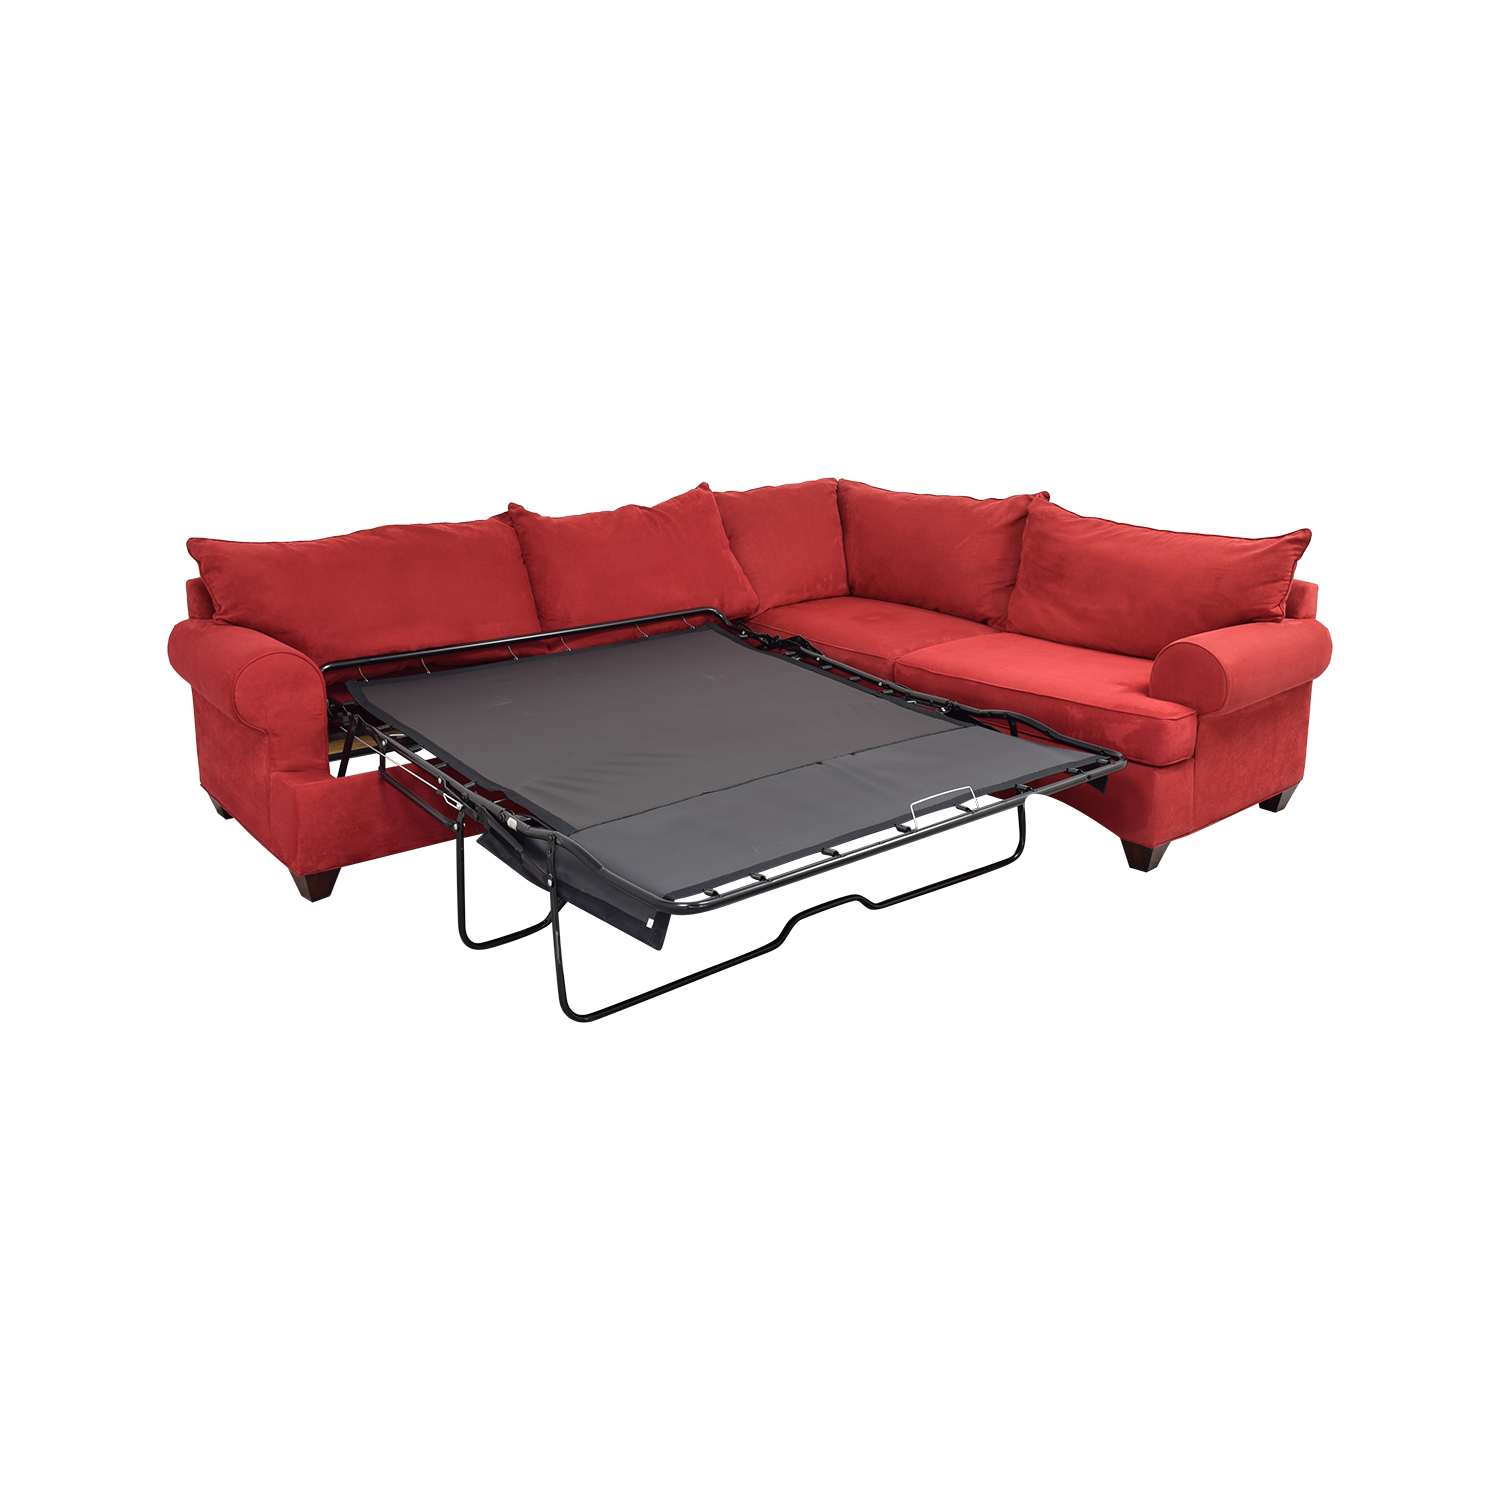 Raymour & Flanigan Sleeper Sectional Sofa Raymour & Flanigan